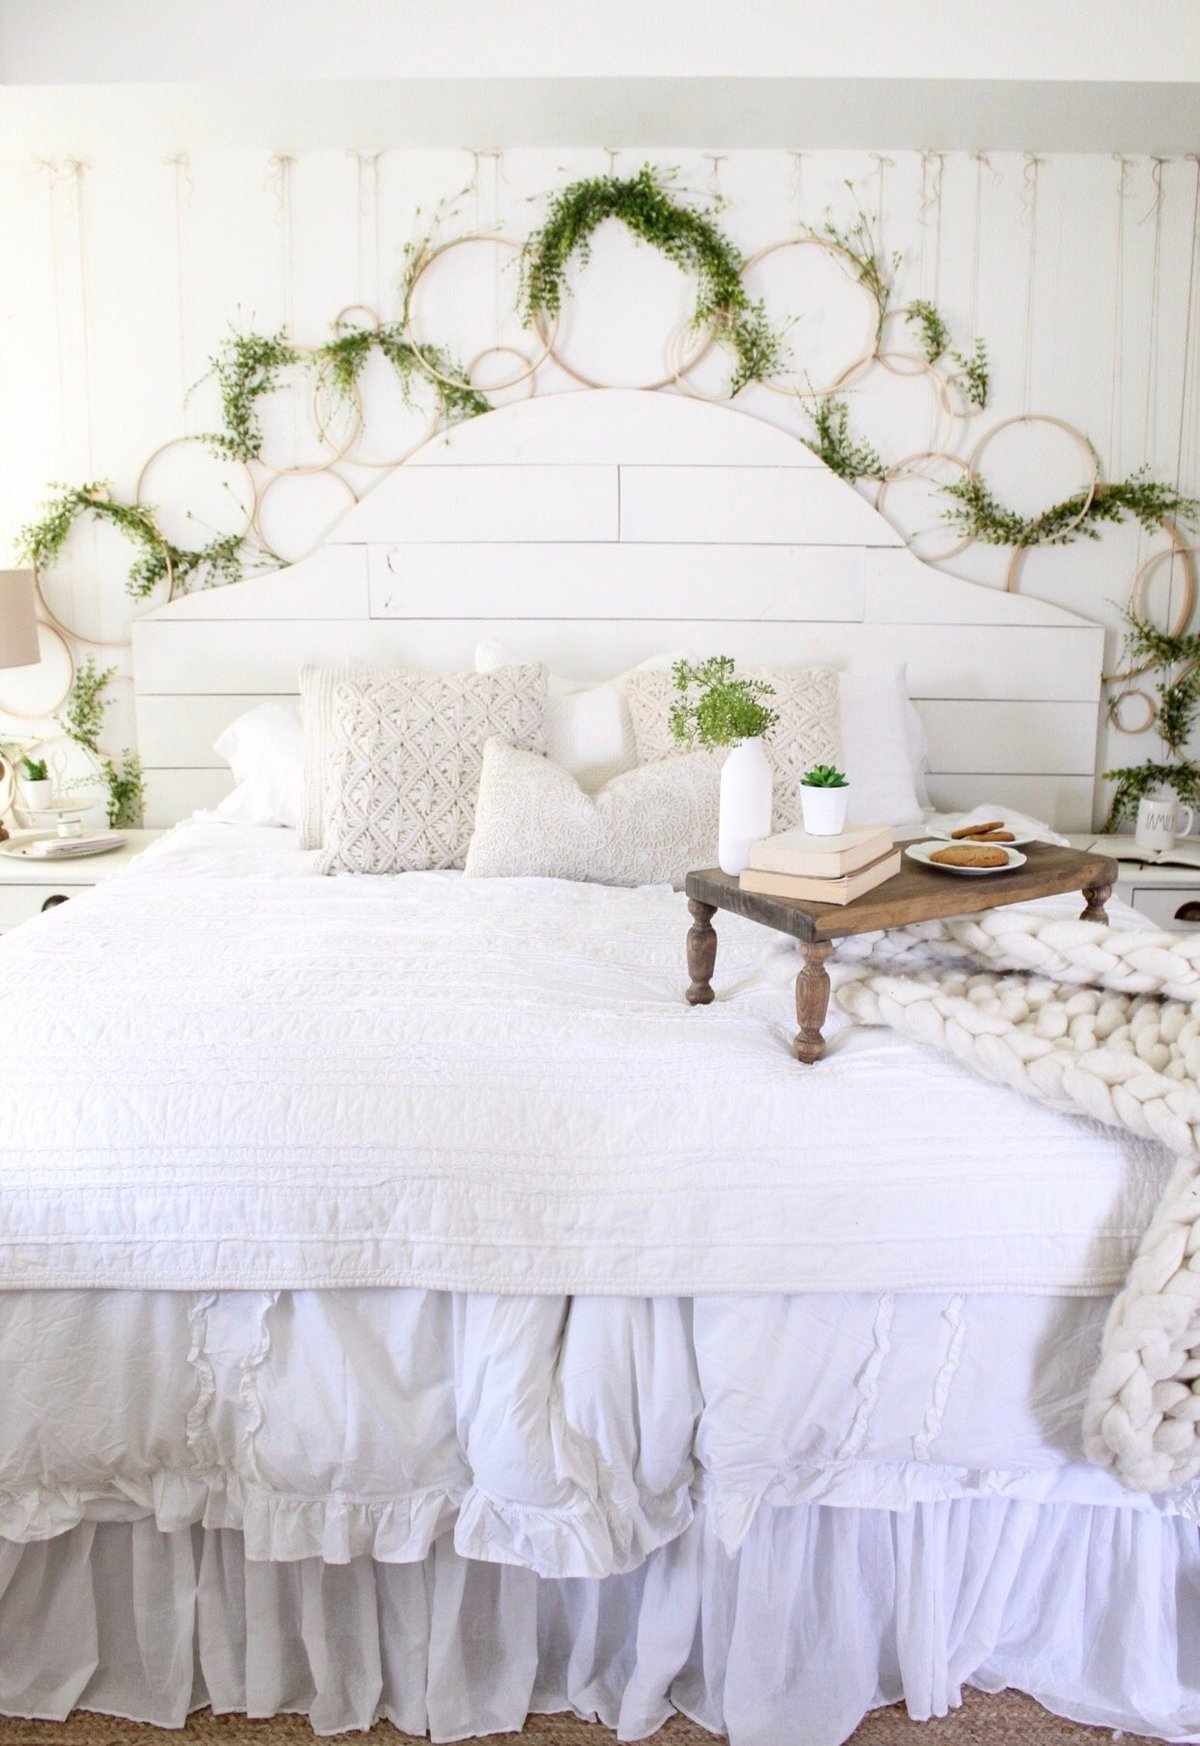 CottonStem.com farmhouse bedroom shiplap headboard spring decor